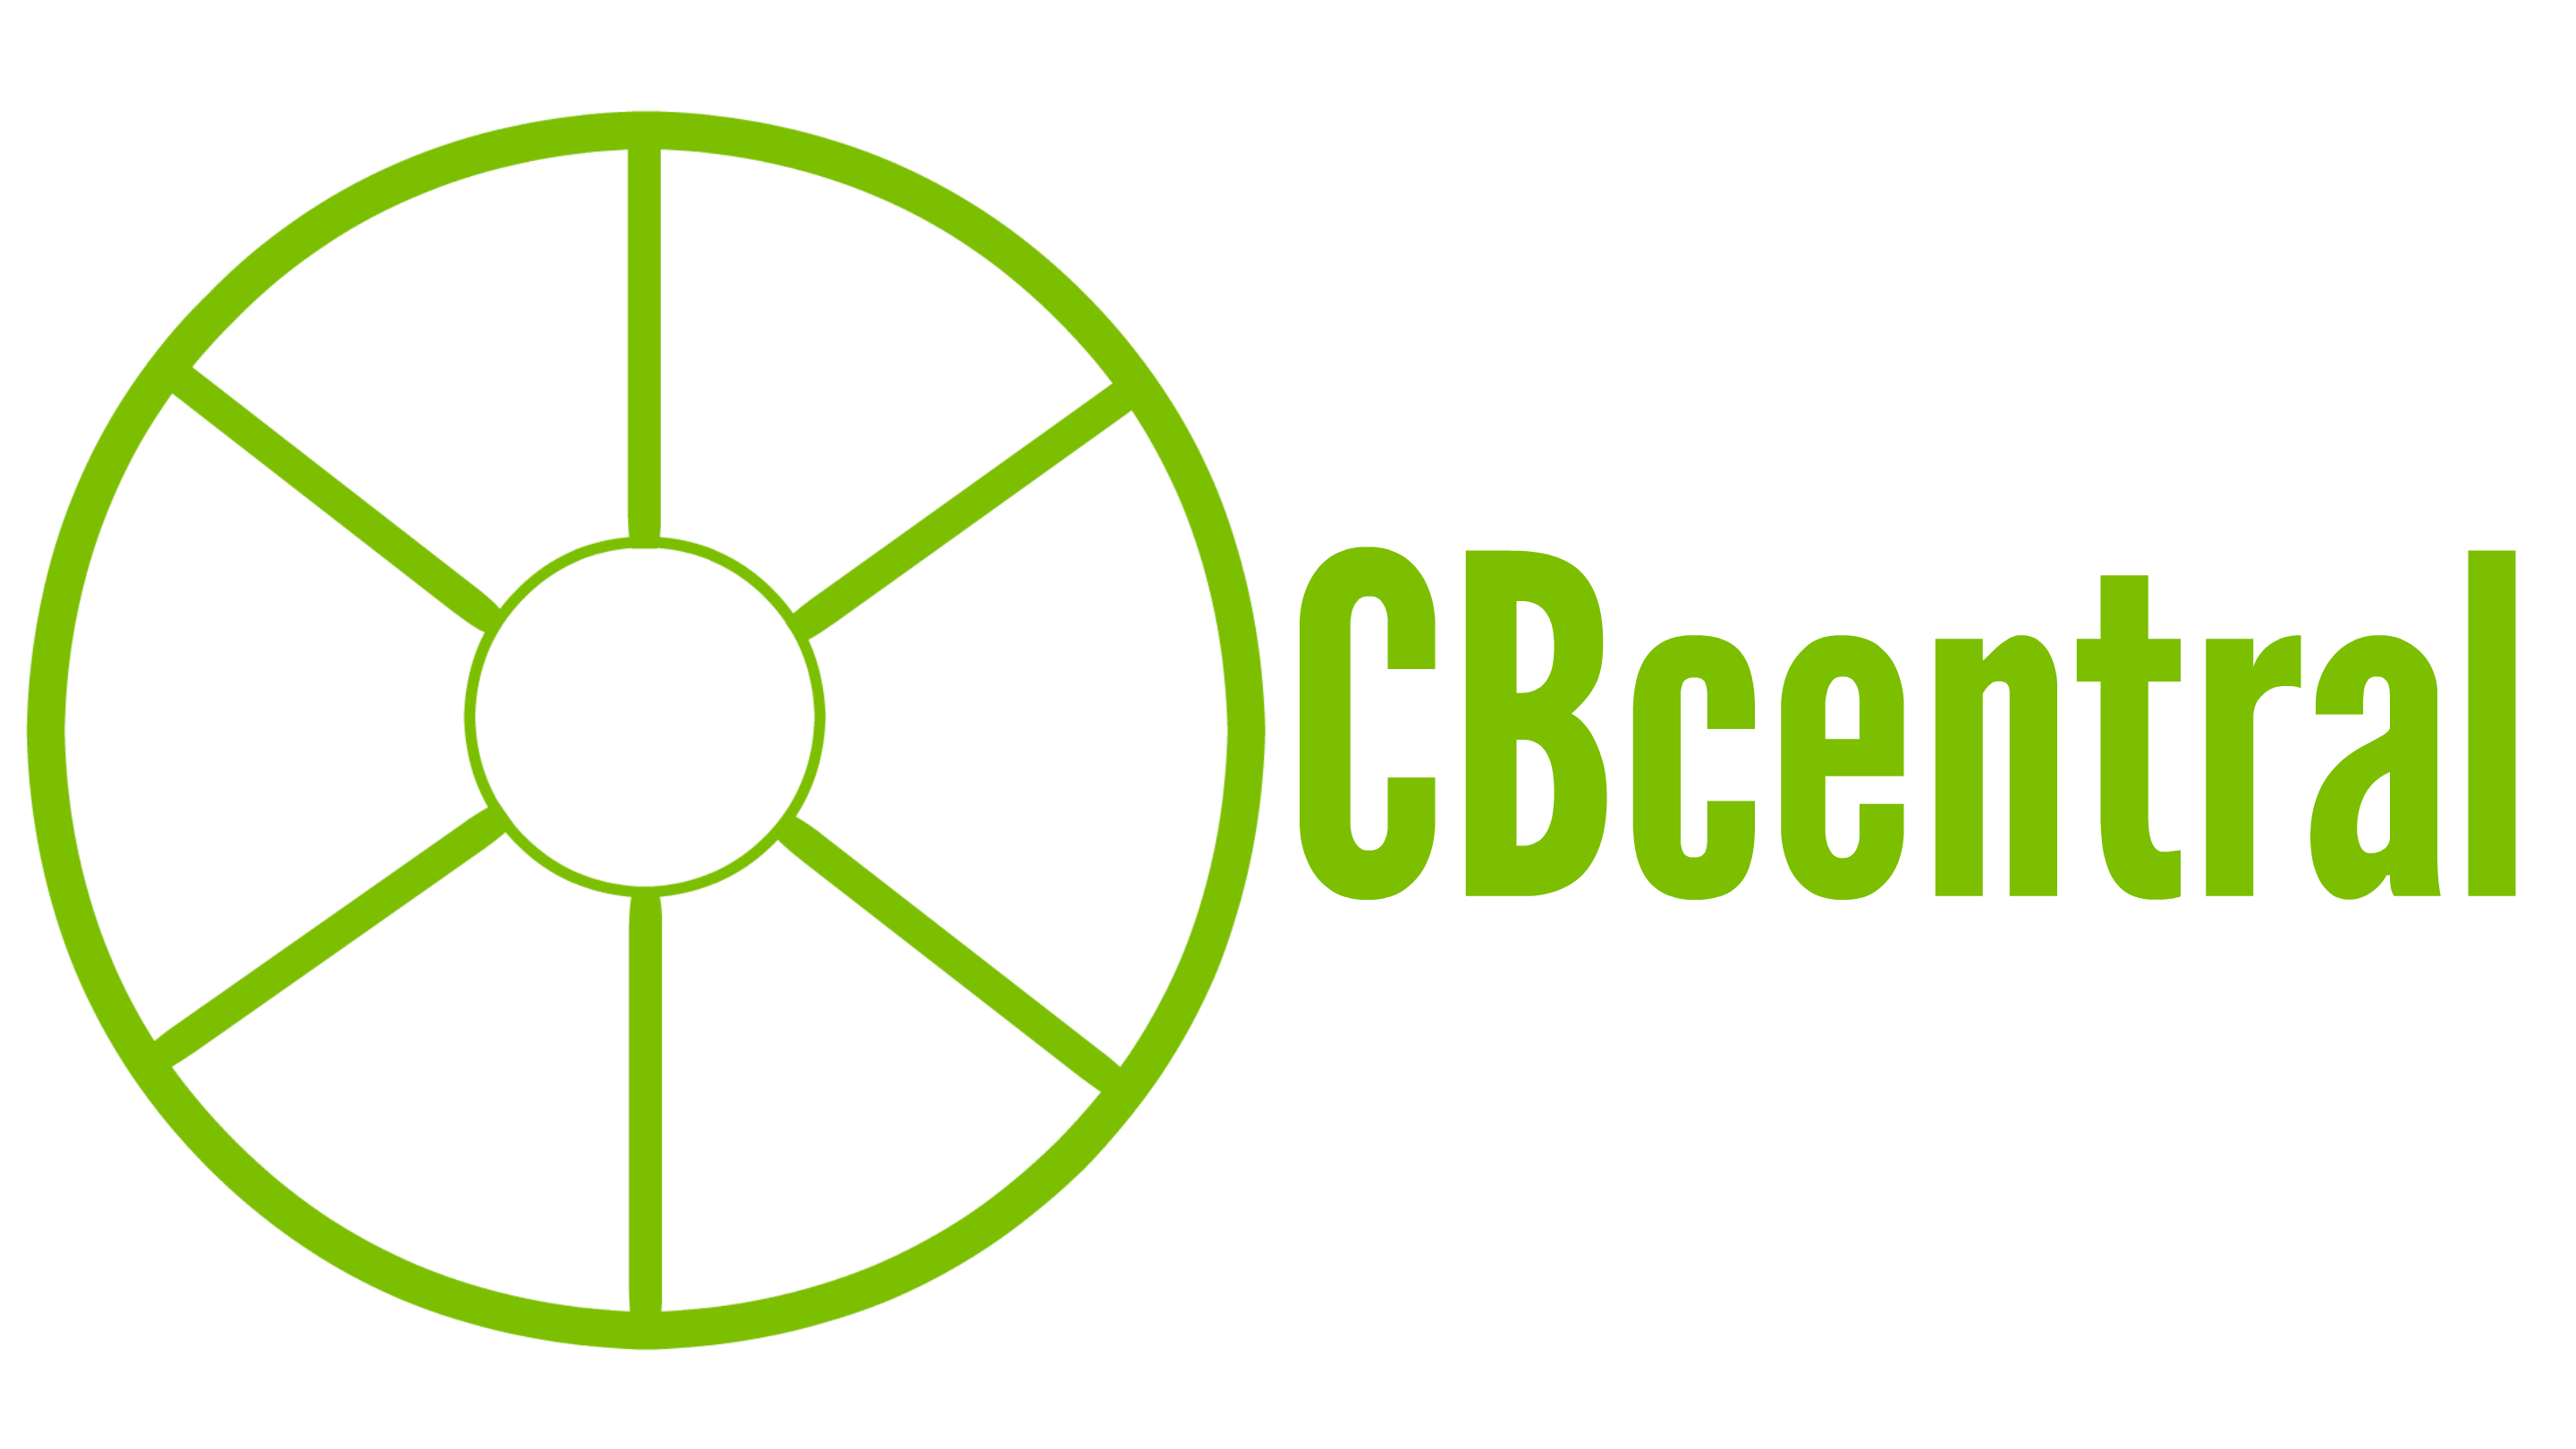 CBcentral